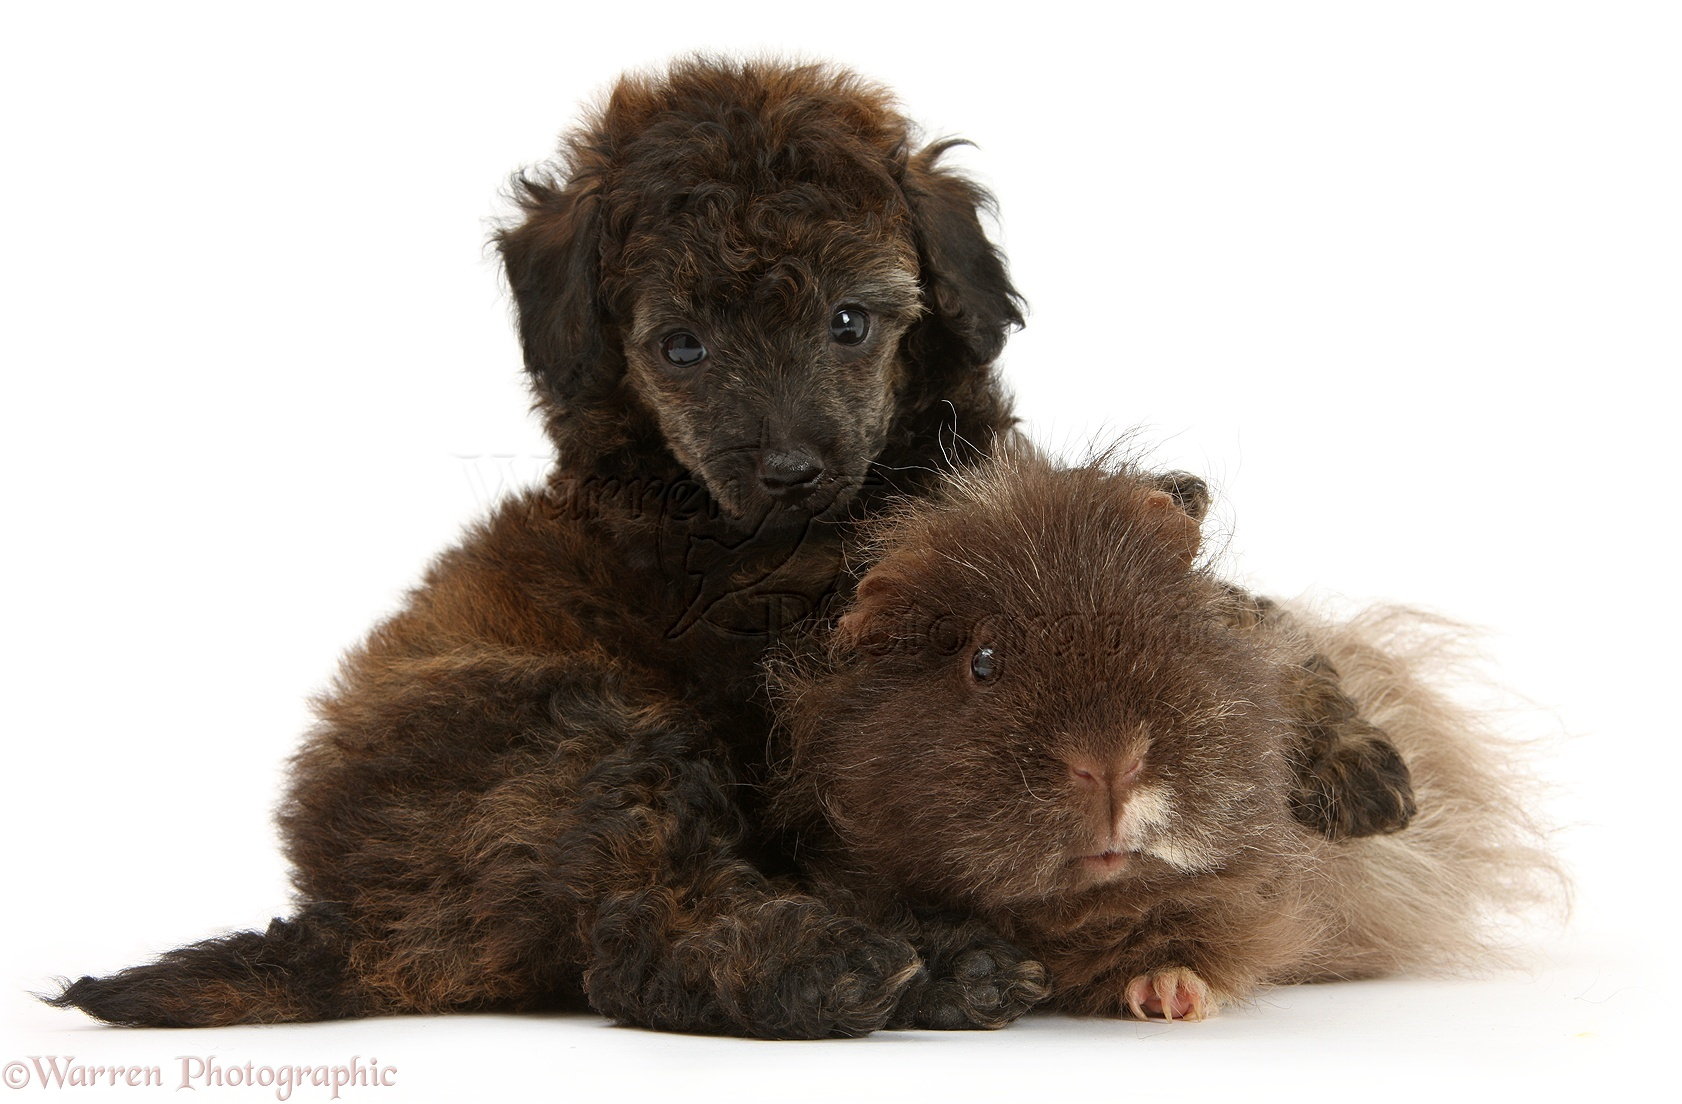 Pets: Red merle Toy Poodle pup and shaggy Guinea pig photo - WP43517